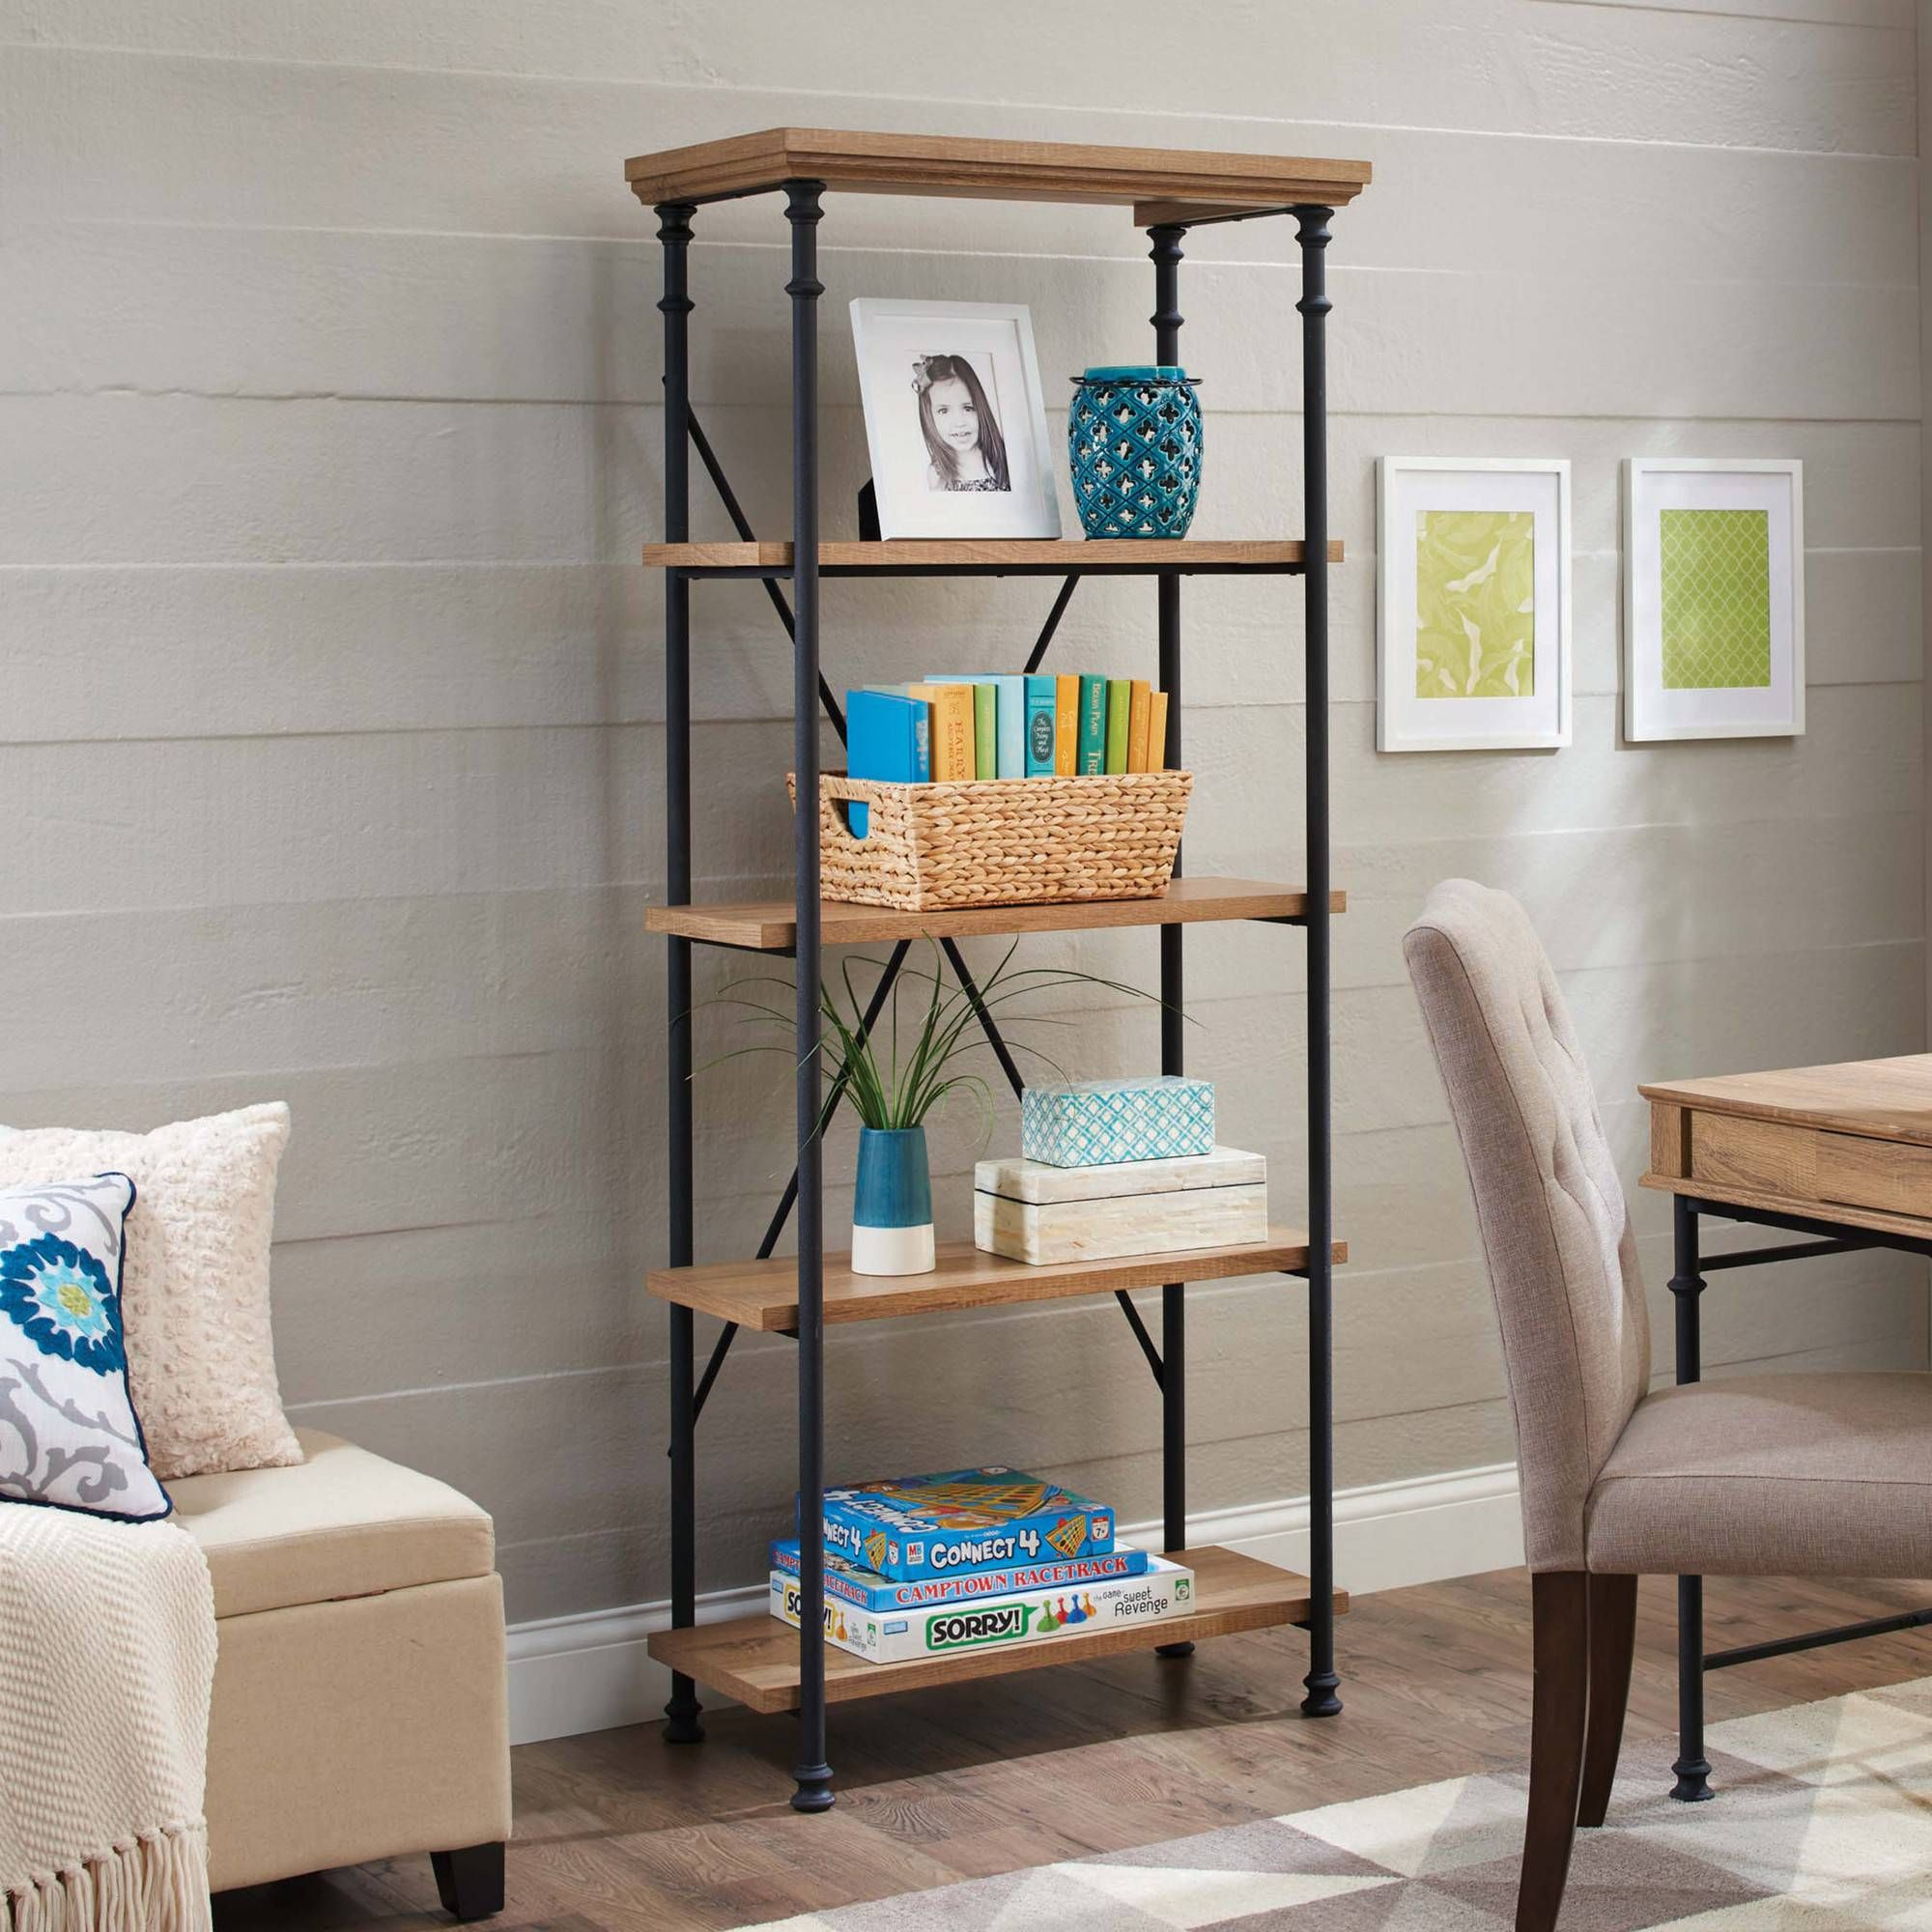 Better Homes And Gardens River Crest 5 Shelf Bookcase Rustic Oak Finish